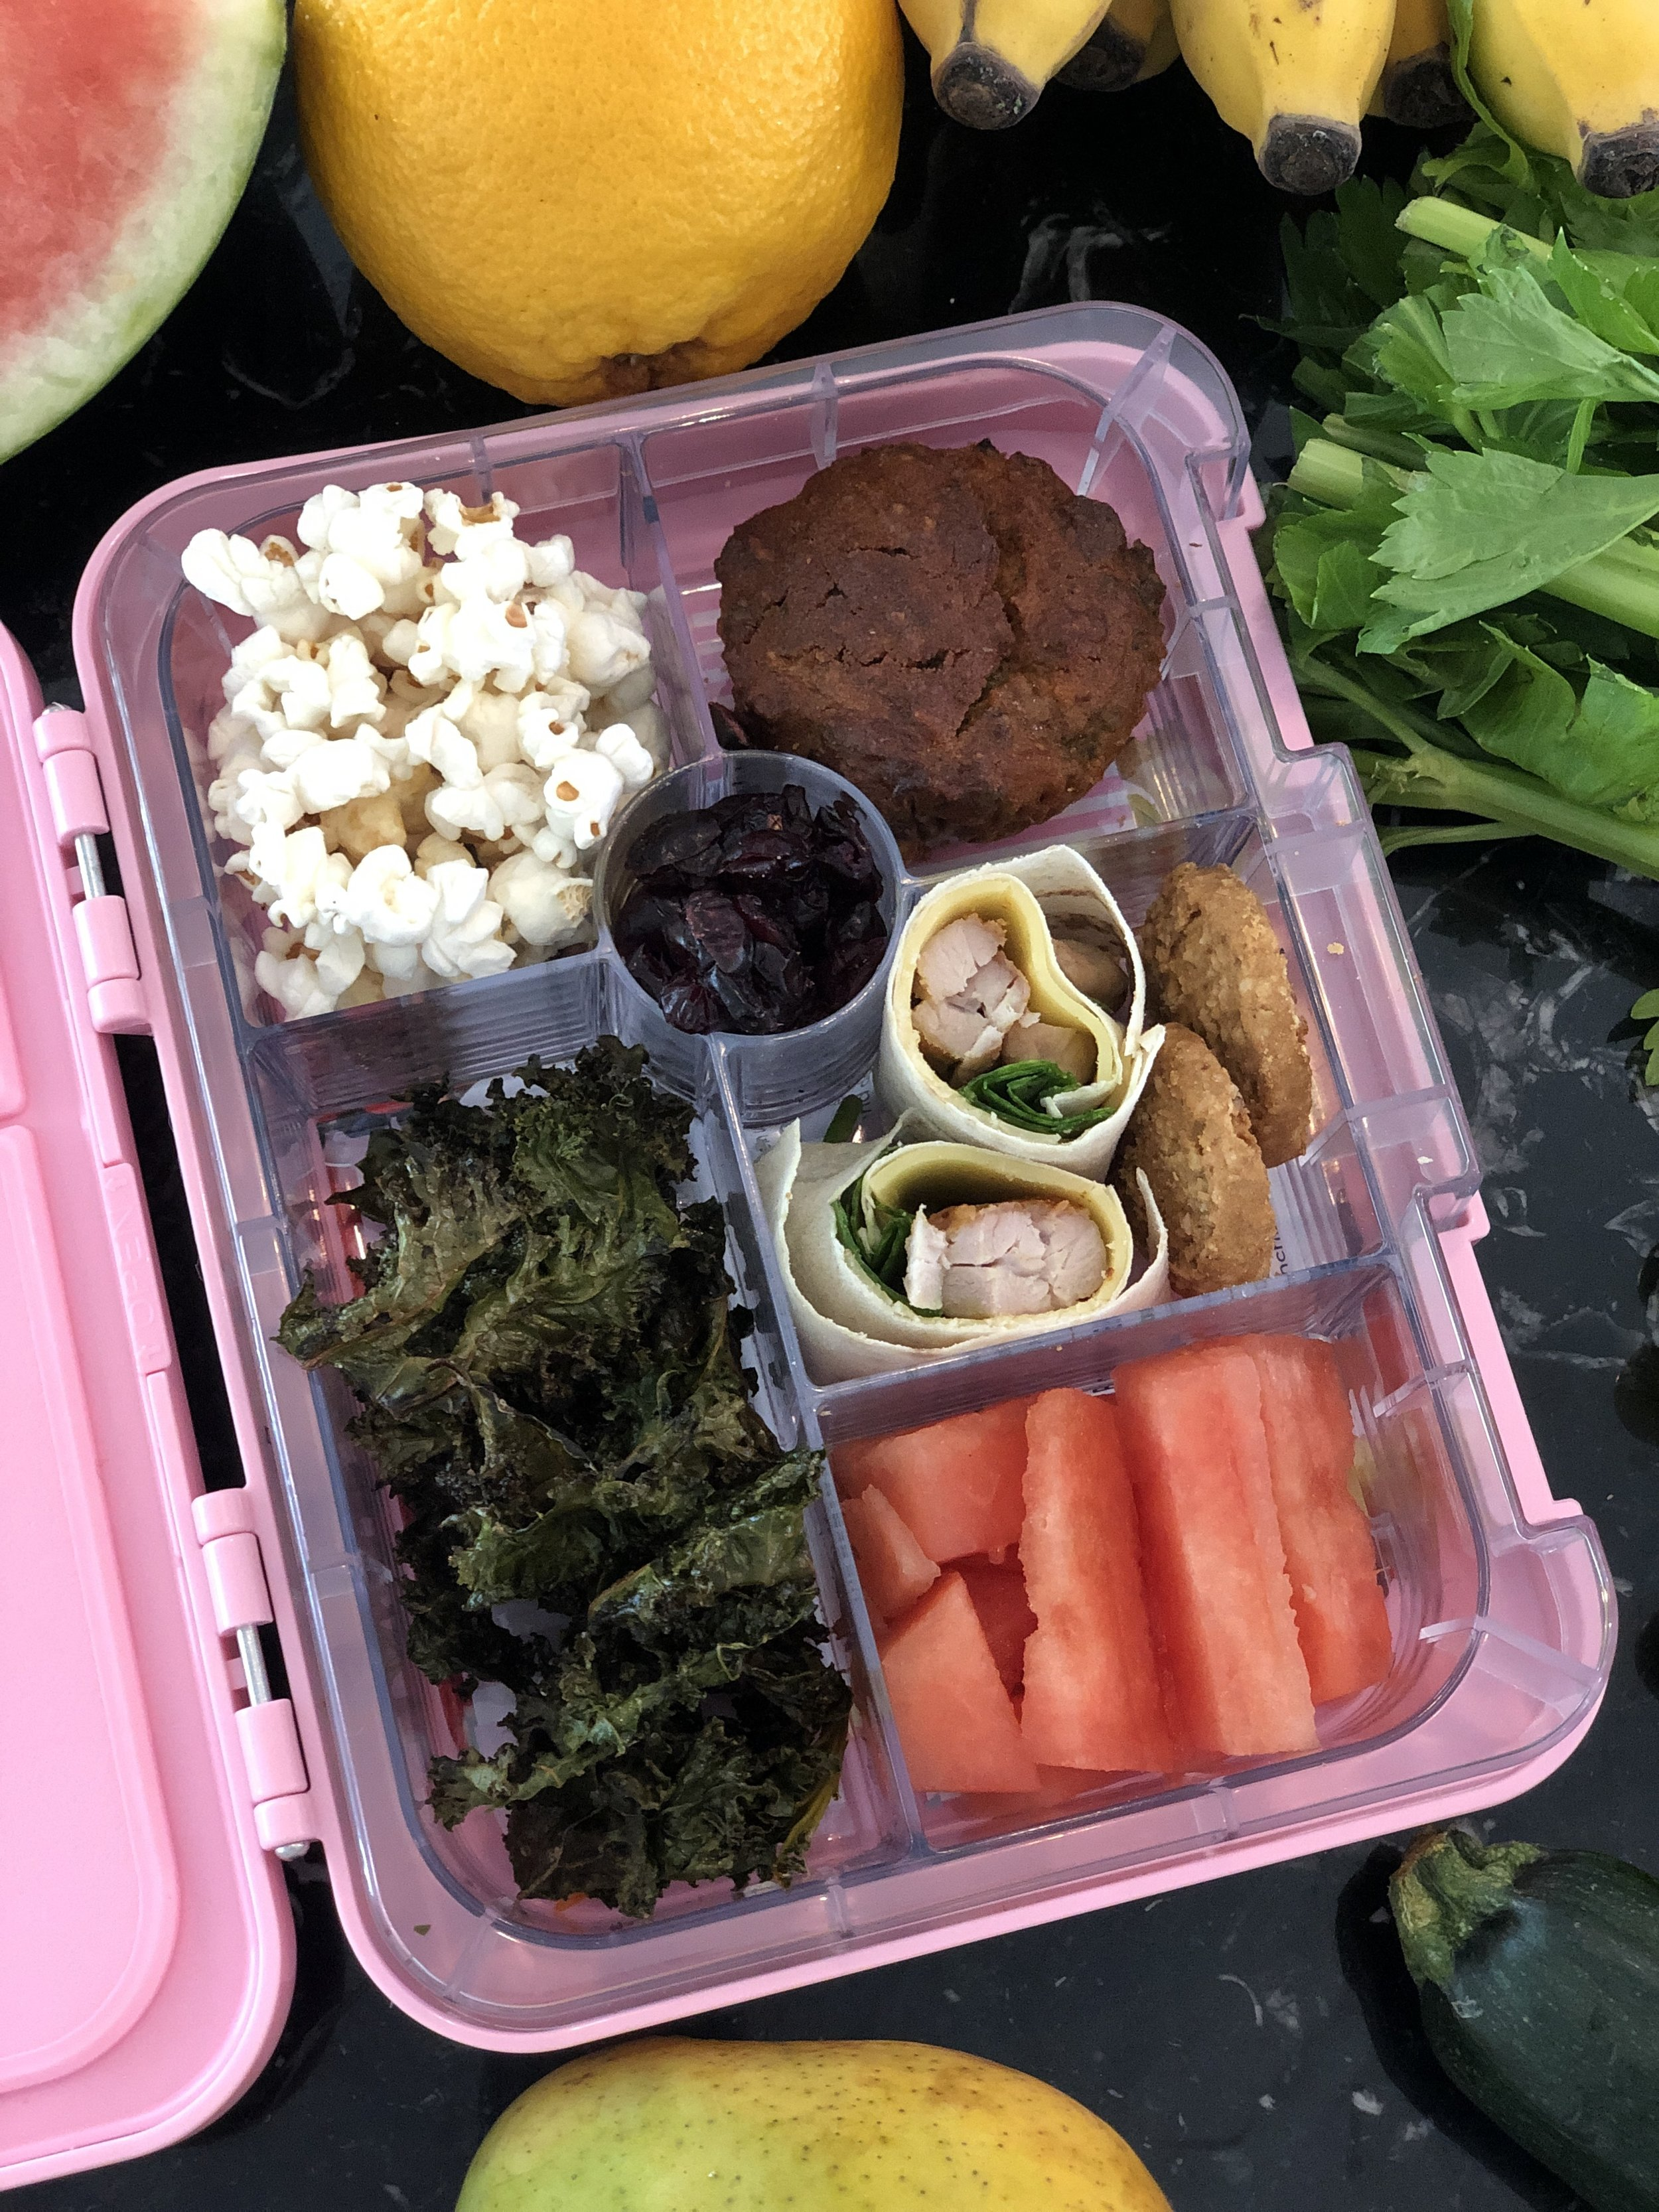 THURSDAY - Dairy and Protein: Chicken, cheese and spinach wraps on Mountain BreadVege: Kale ChipsFruit: WatermelonGrain: Carrot and Cinnamon Muffins from the Wholesome Child and PopcornTreat: Dried Cranberries